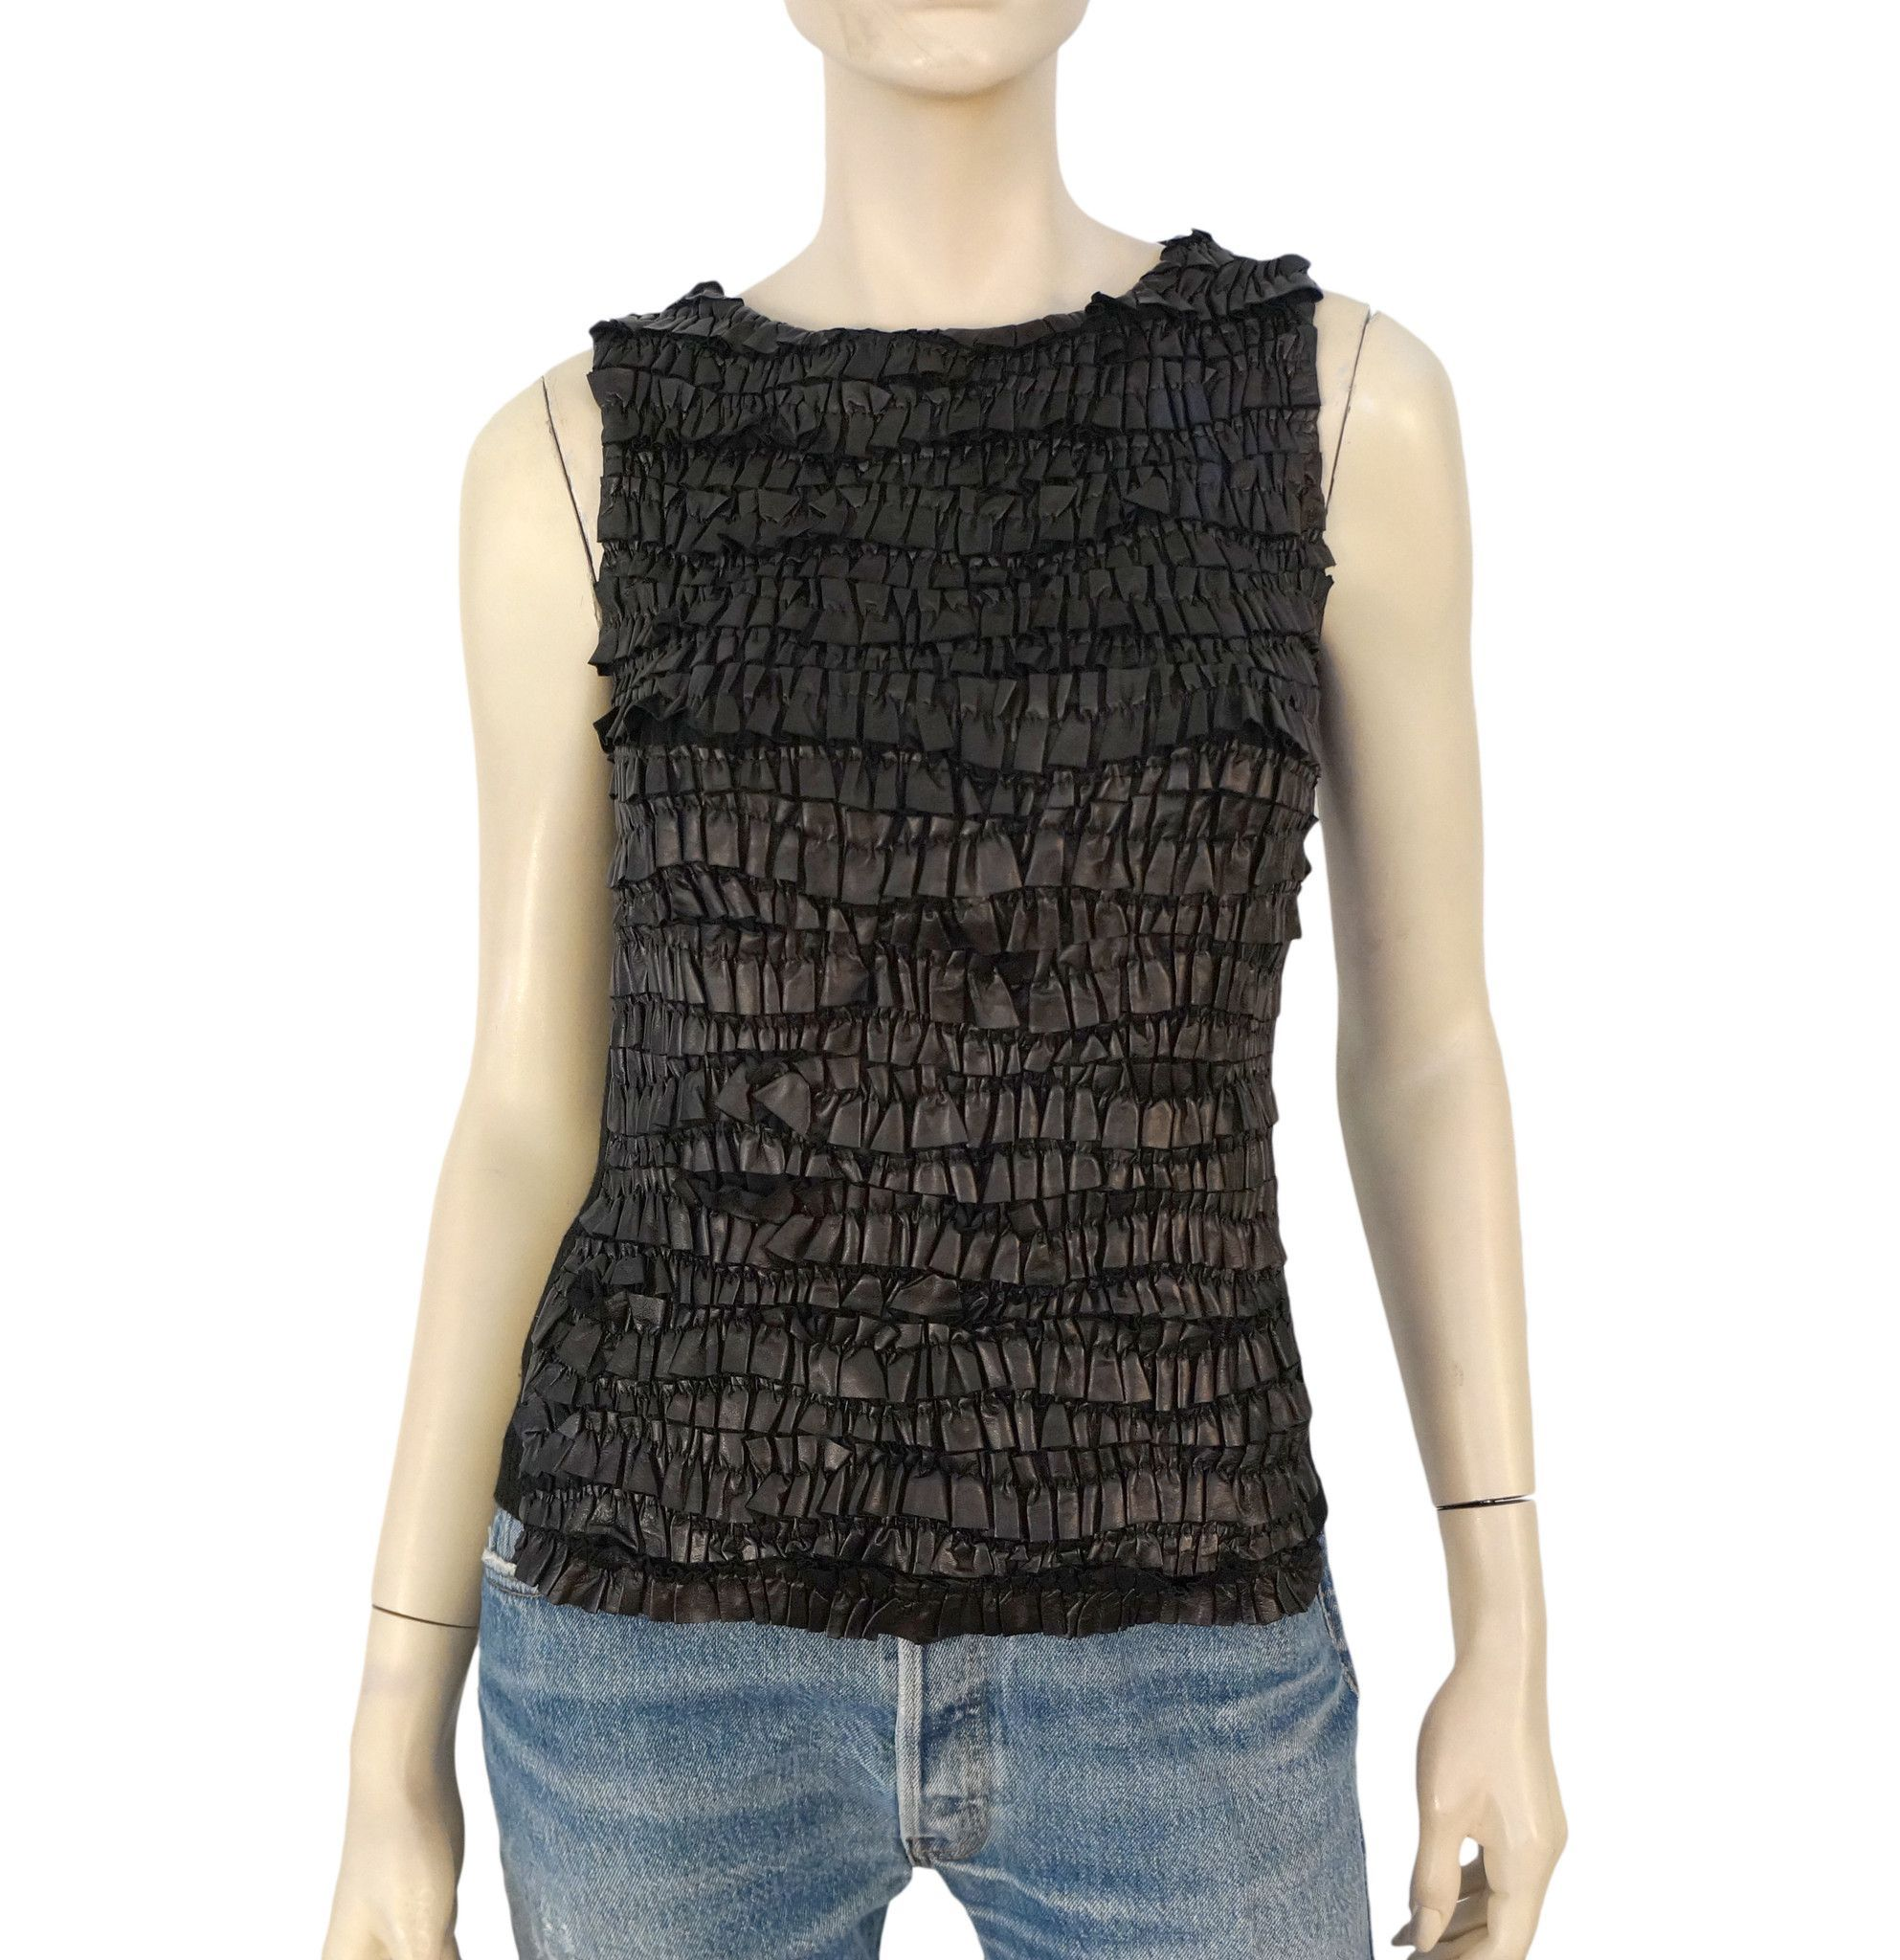 PRADA Paneled Leather Knit Top, IT 40 / US 4